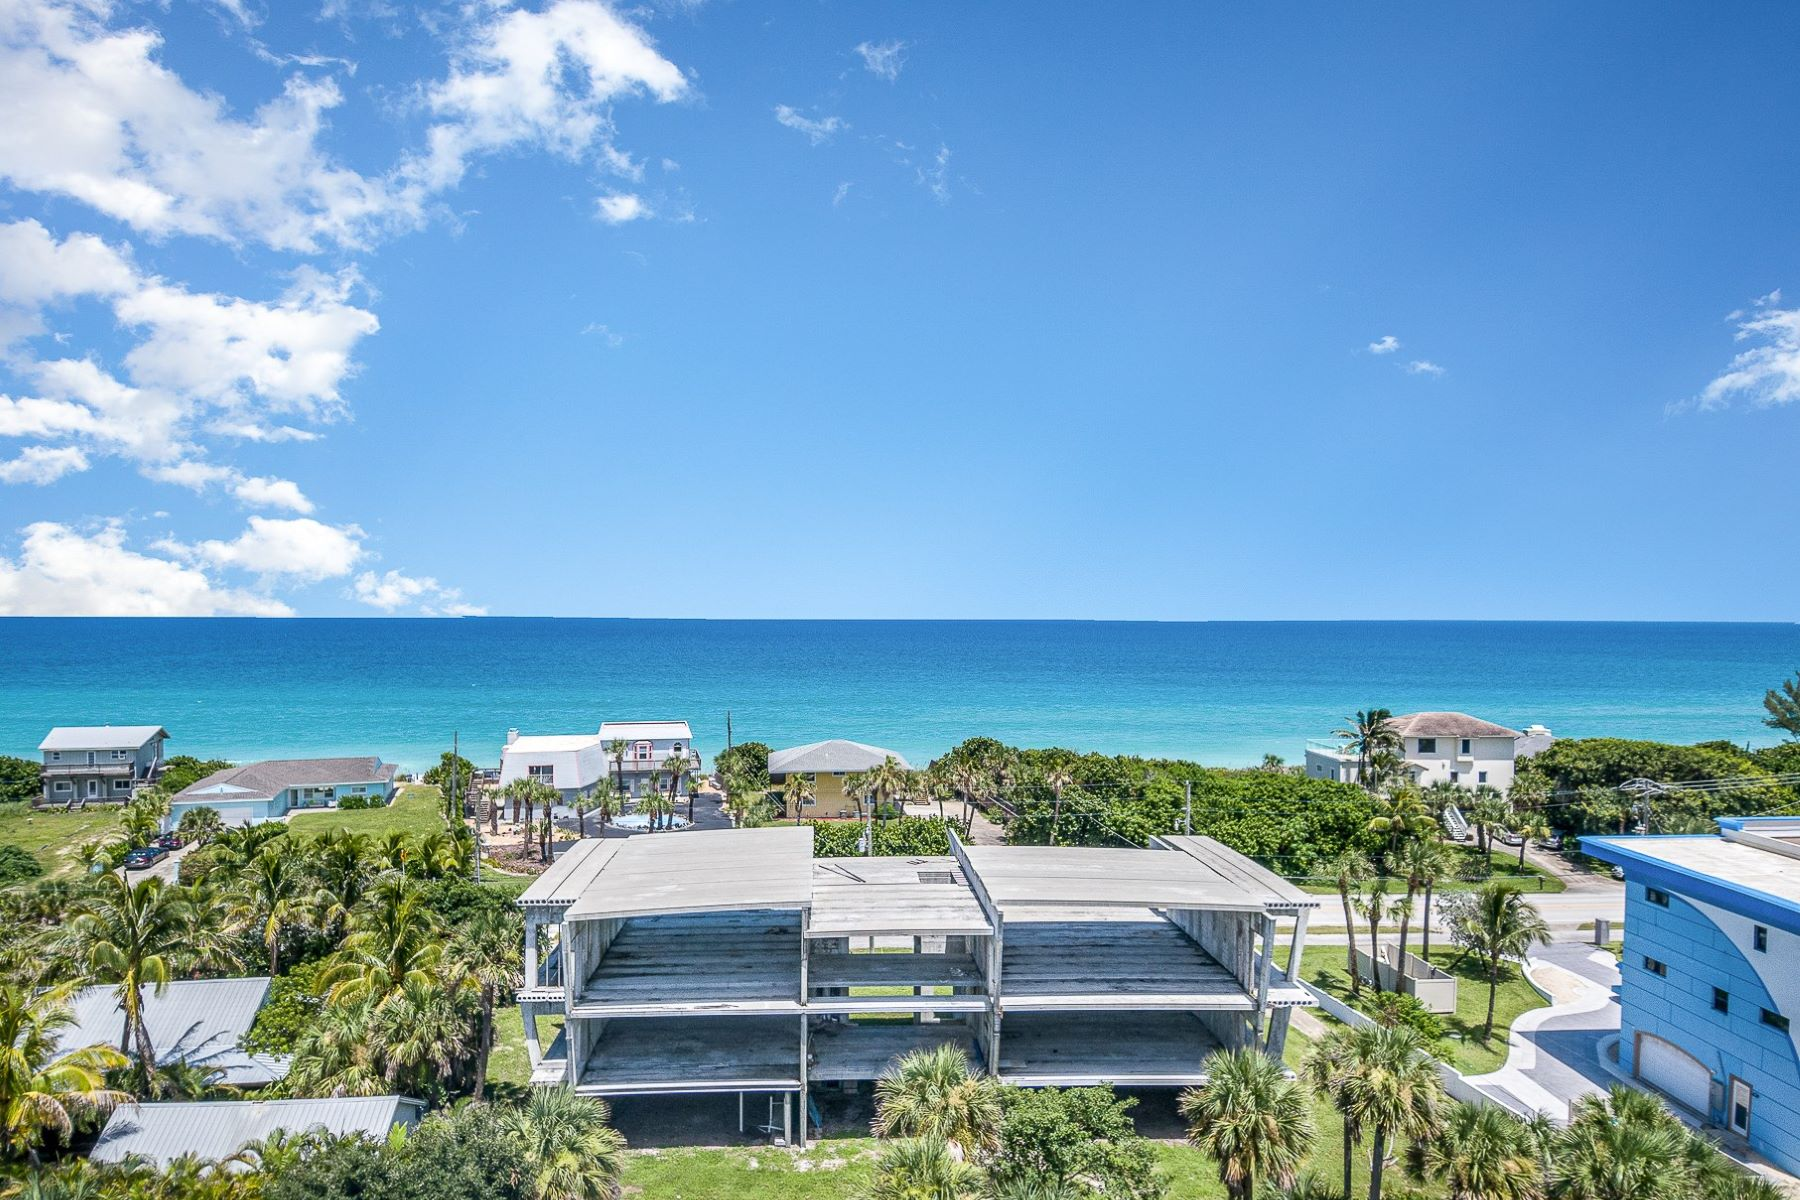 for Sale at 7880 S Highway A1a, Melbourne Beach, FL 7880 S Highway A1a Melbourne Beach, Florida 32951 United States